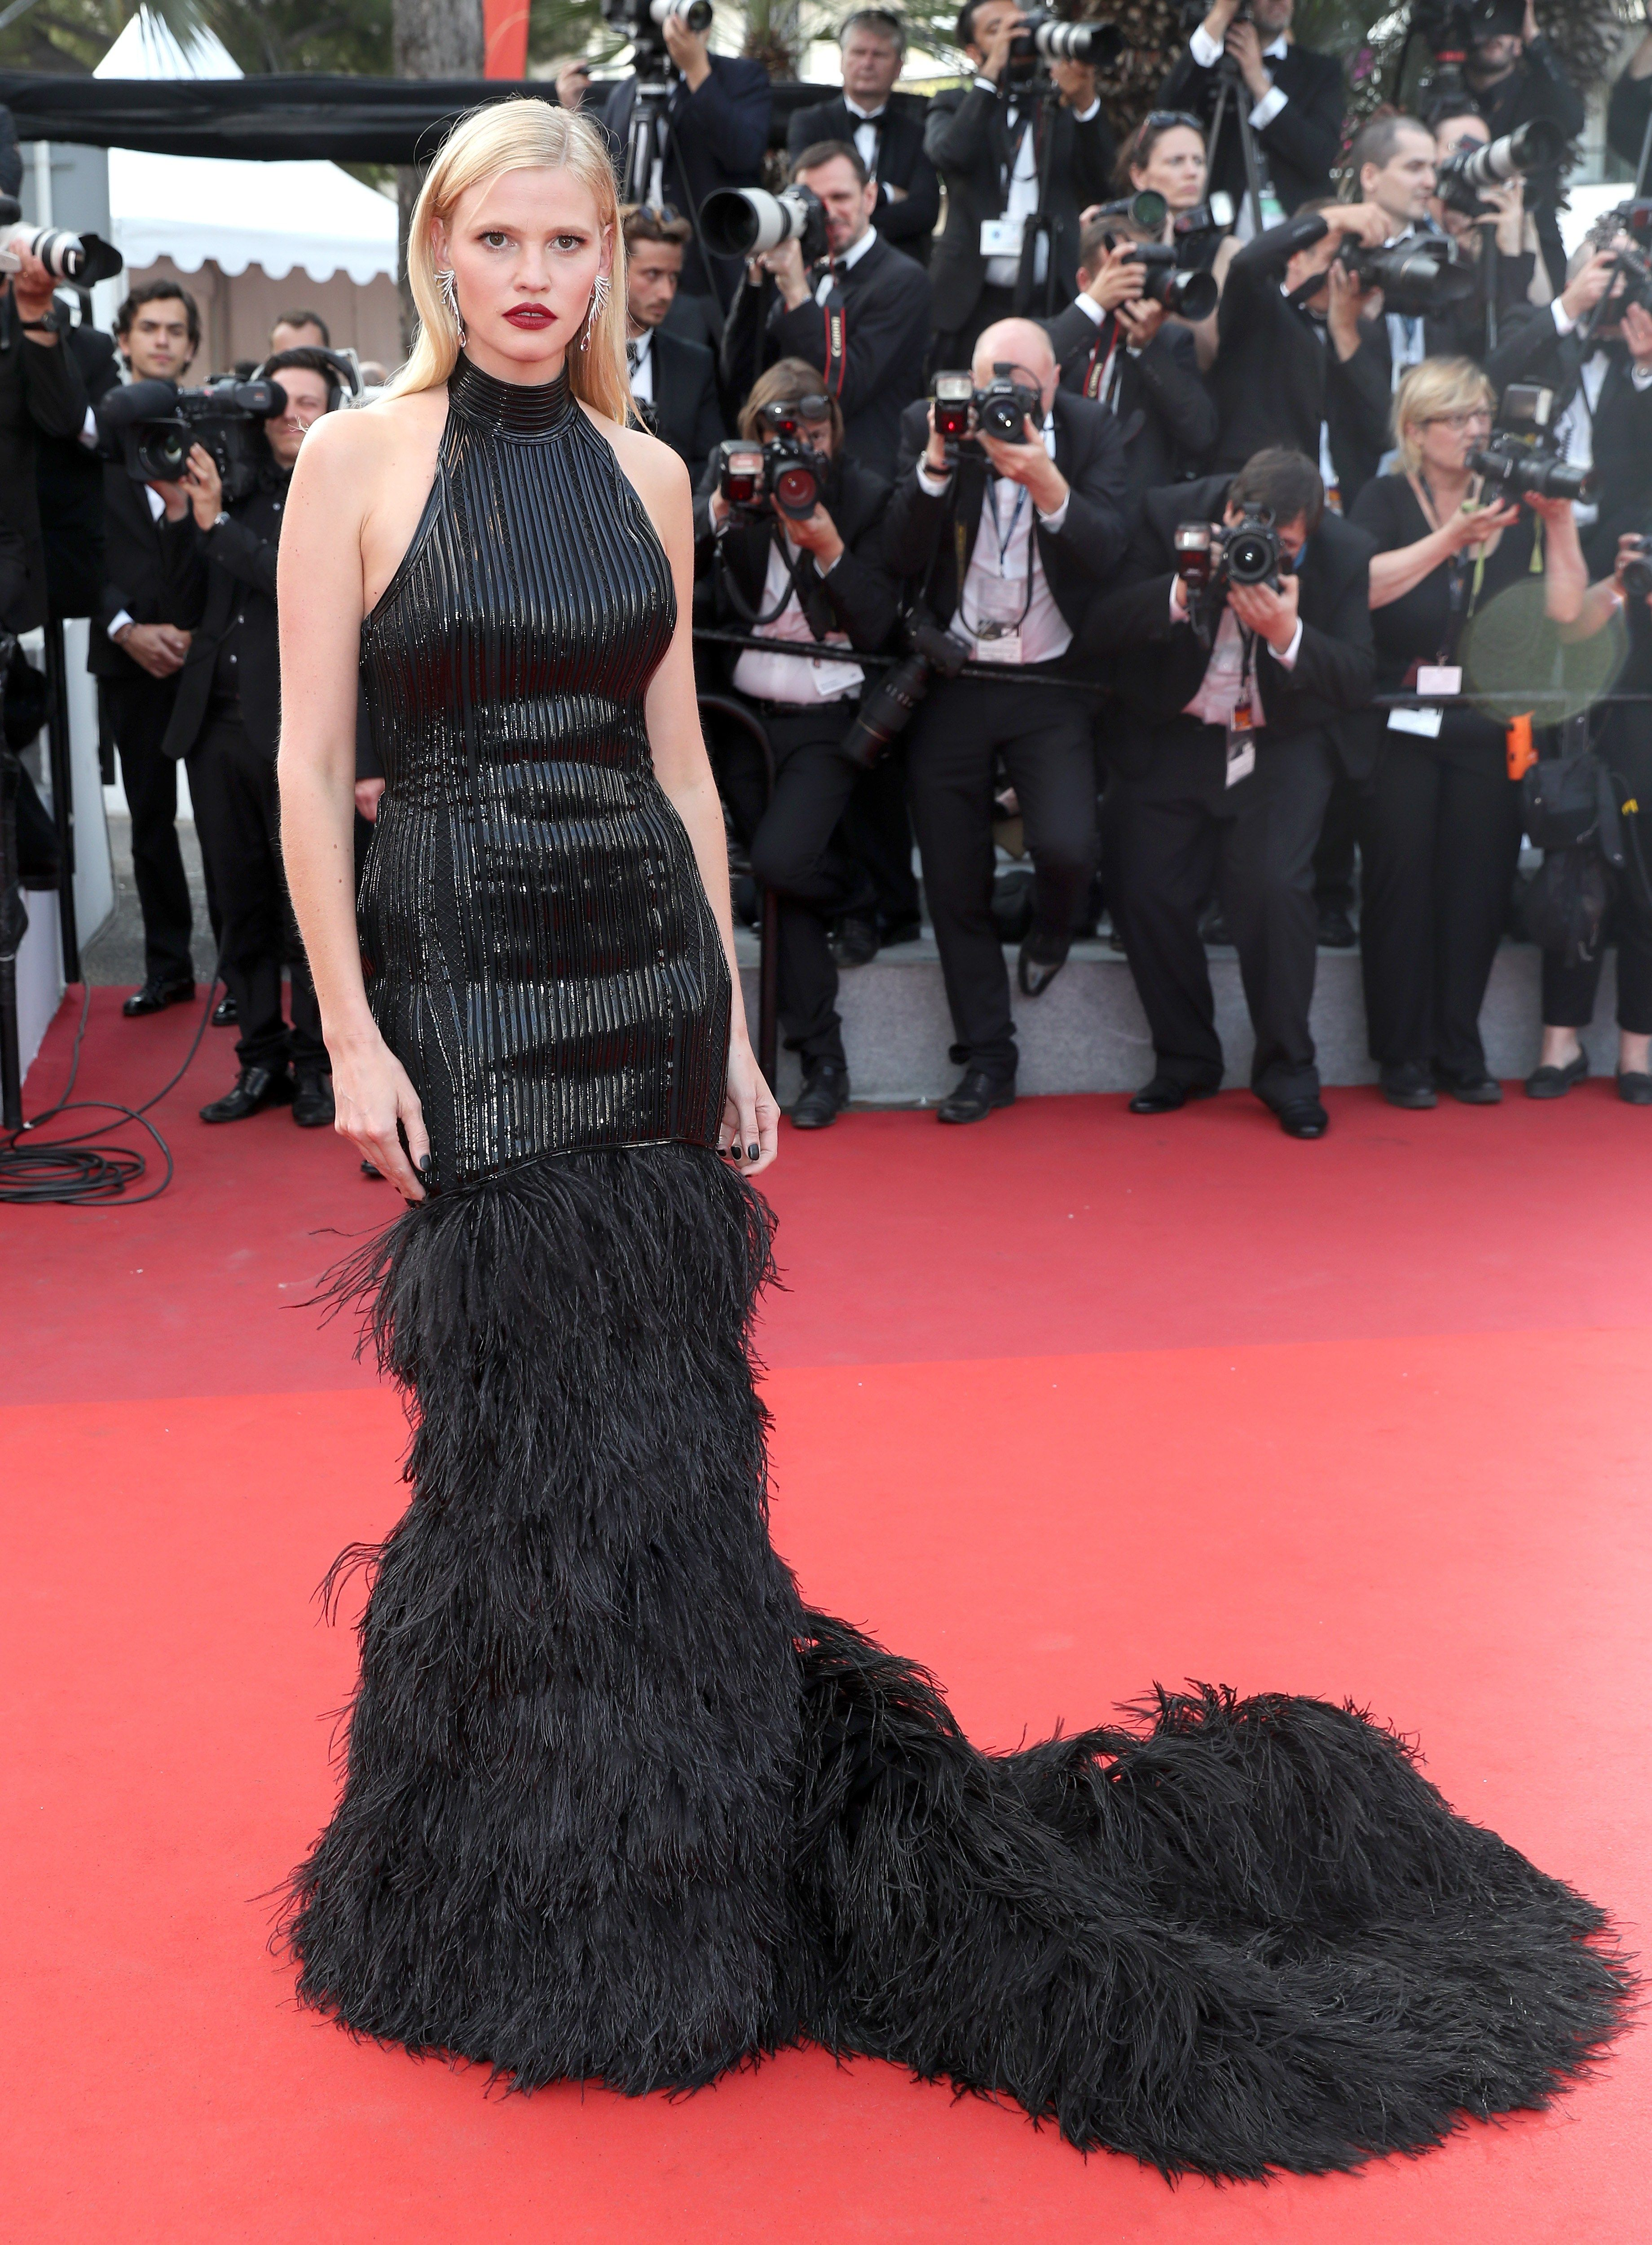 See Every Red Carpet Look From the 2017 Cannes Film Festival - Lara Stone